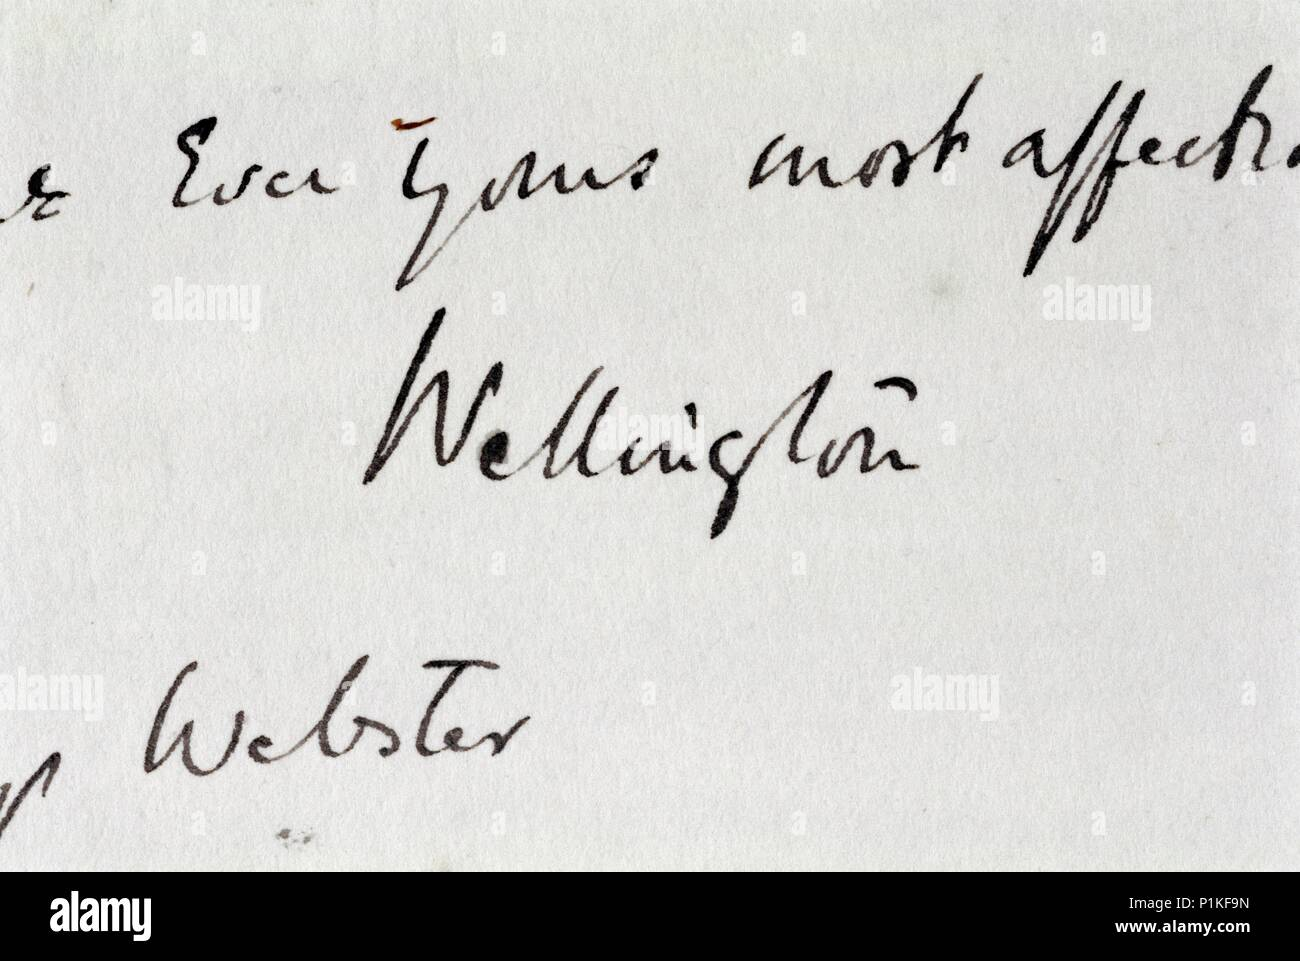 Signature wrongly attributed to the Duke of Wellington, Walmer Castle, Kent. - Stock Image